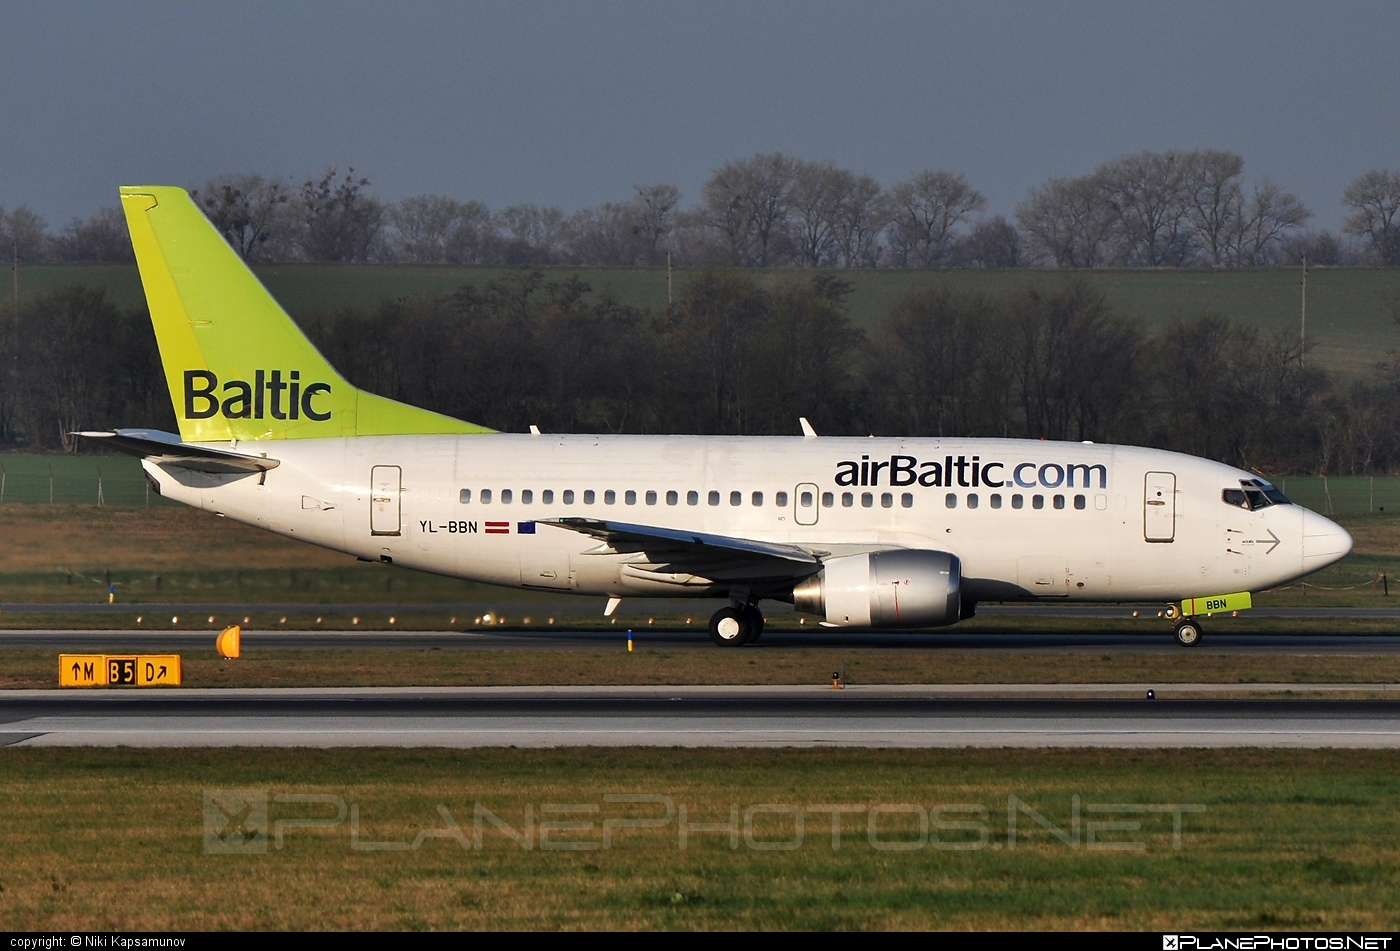 Boeing 737-500 - YL-BBN operated by Air Baltic #airbaltic #b737 #boeing #boeing737